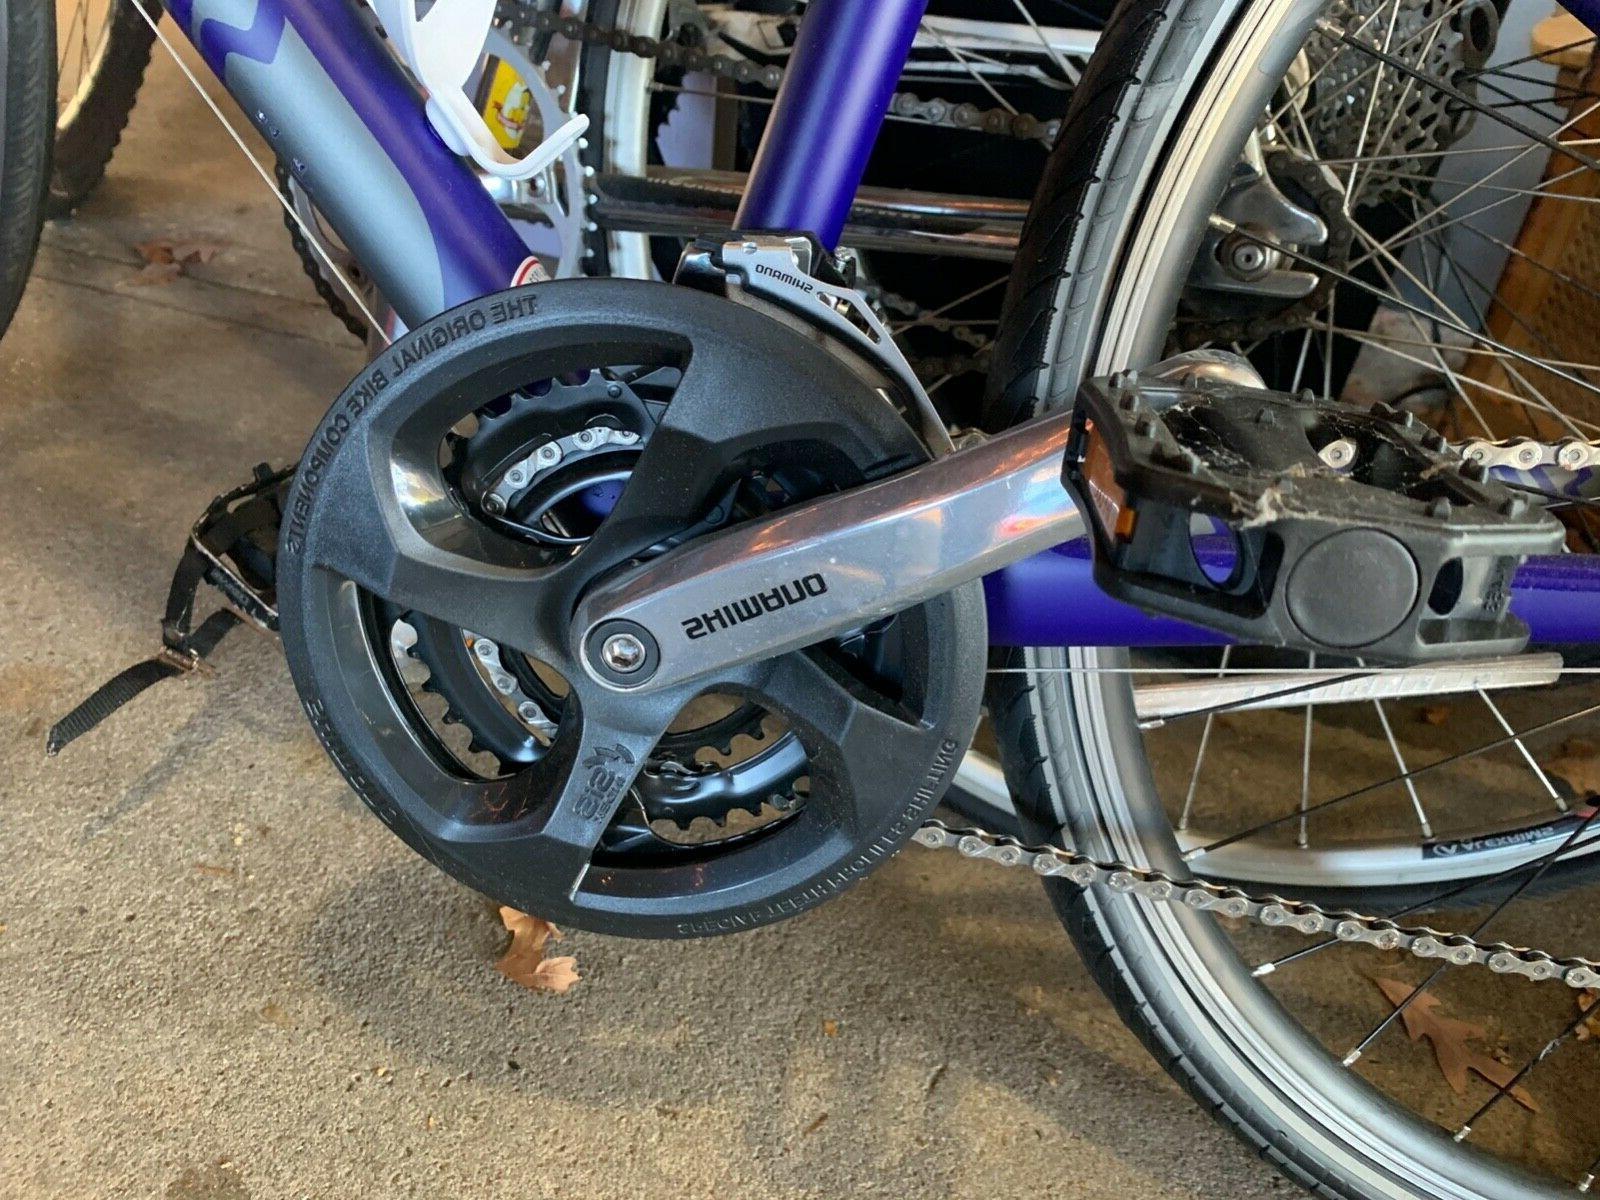 Specialized Purple. and stored in